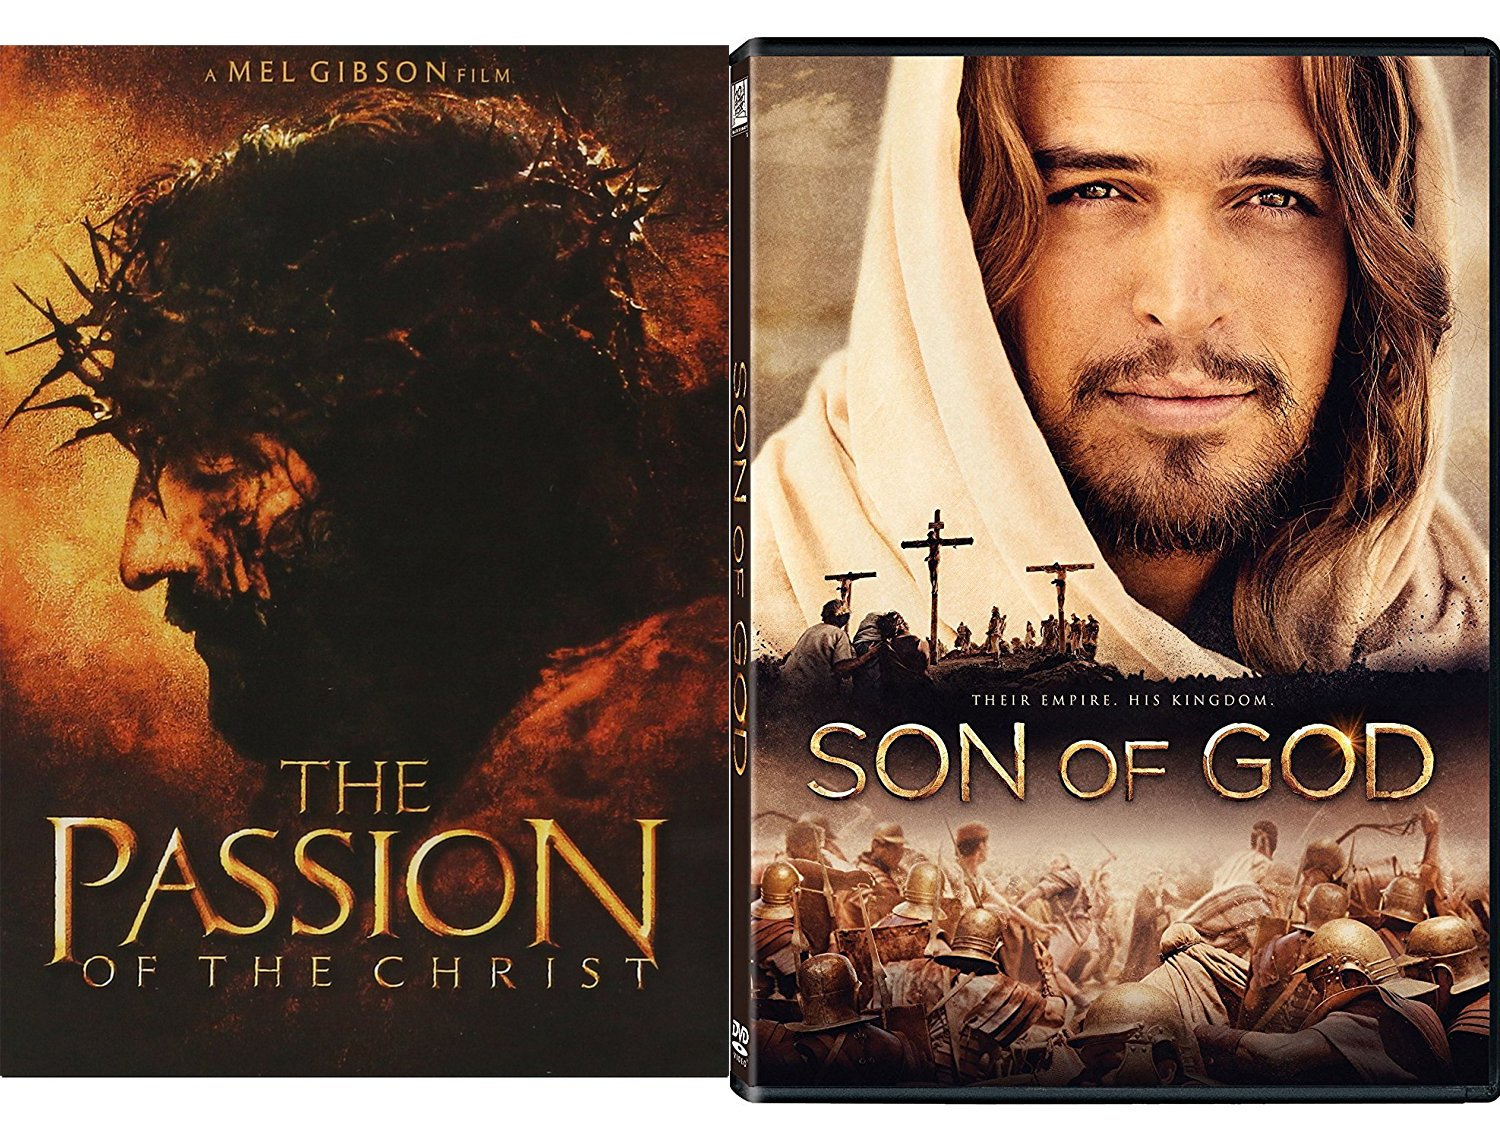 His Kingdom Collection - Son of God Jesus Film  Passion of the